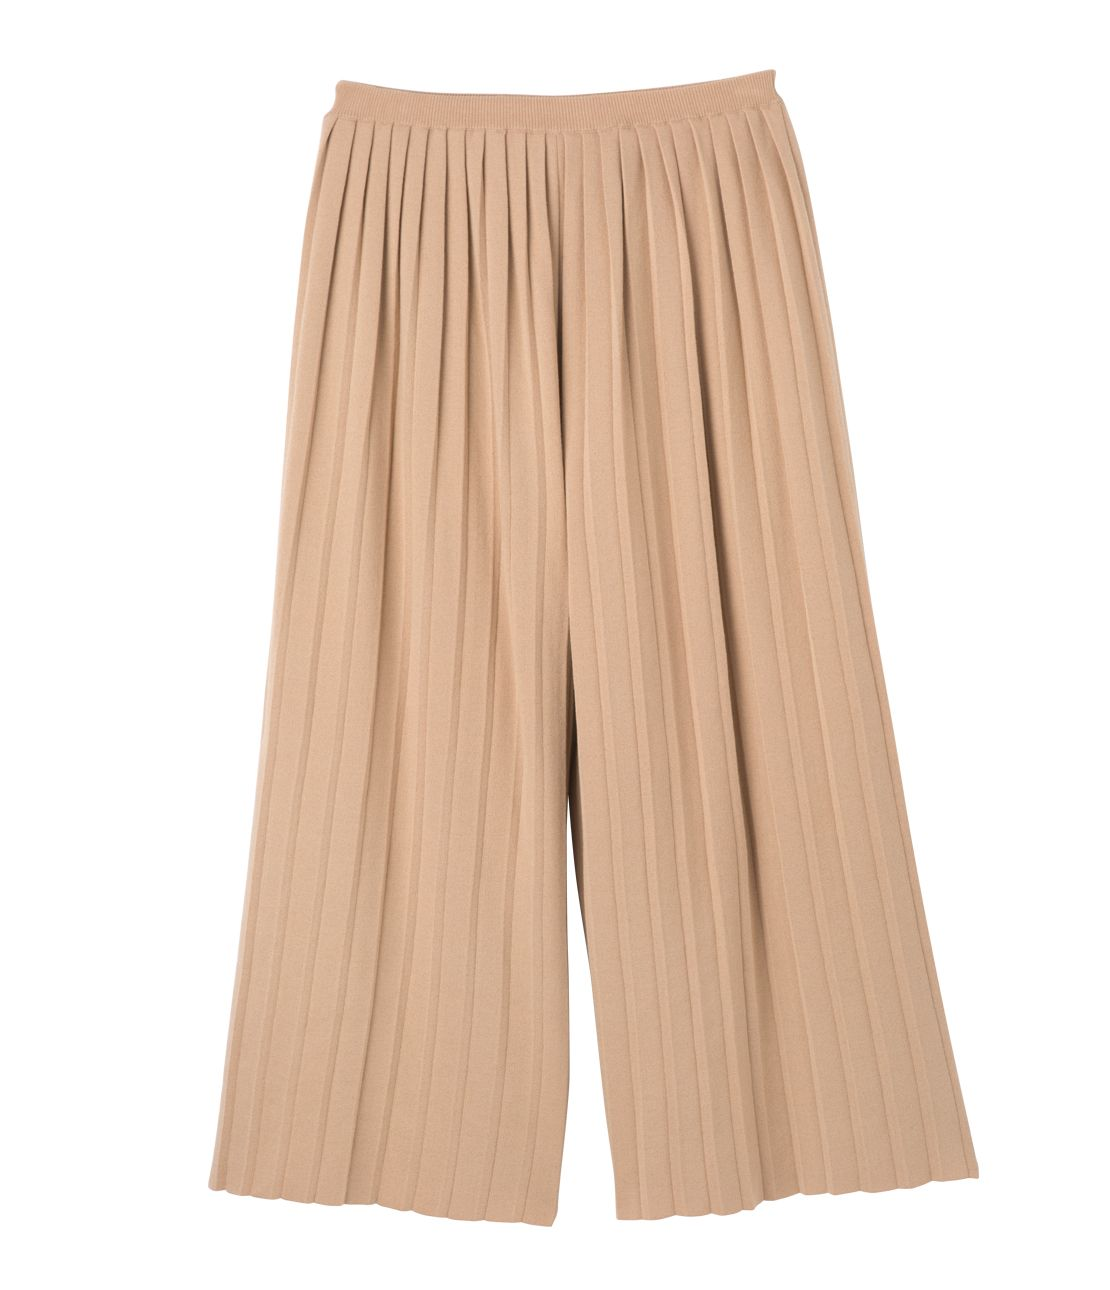 Pleated knit gaucho pants